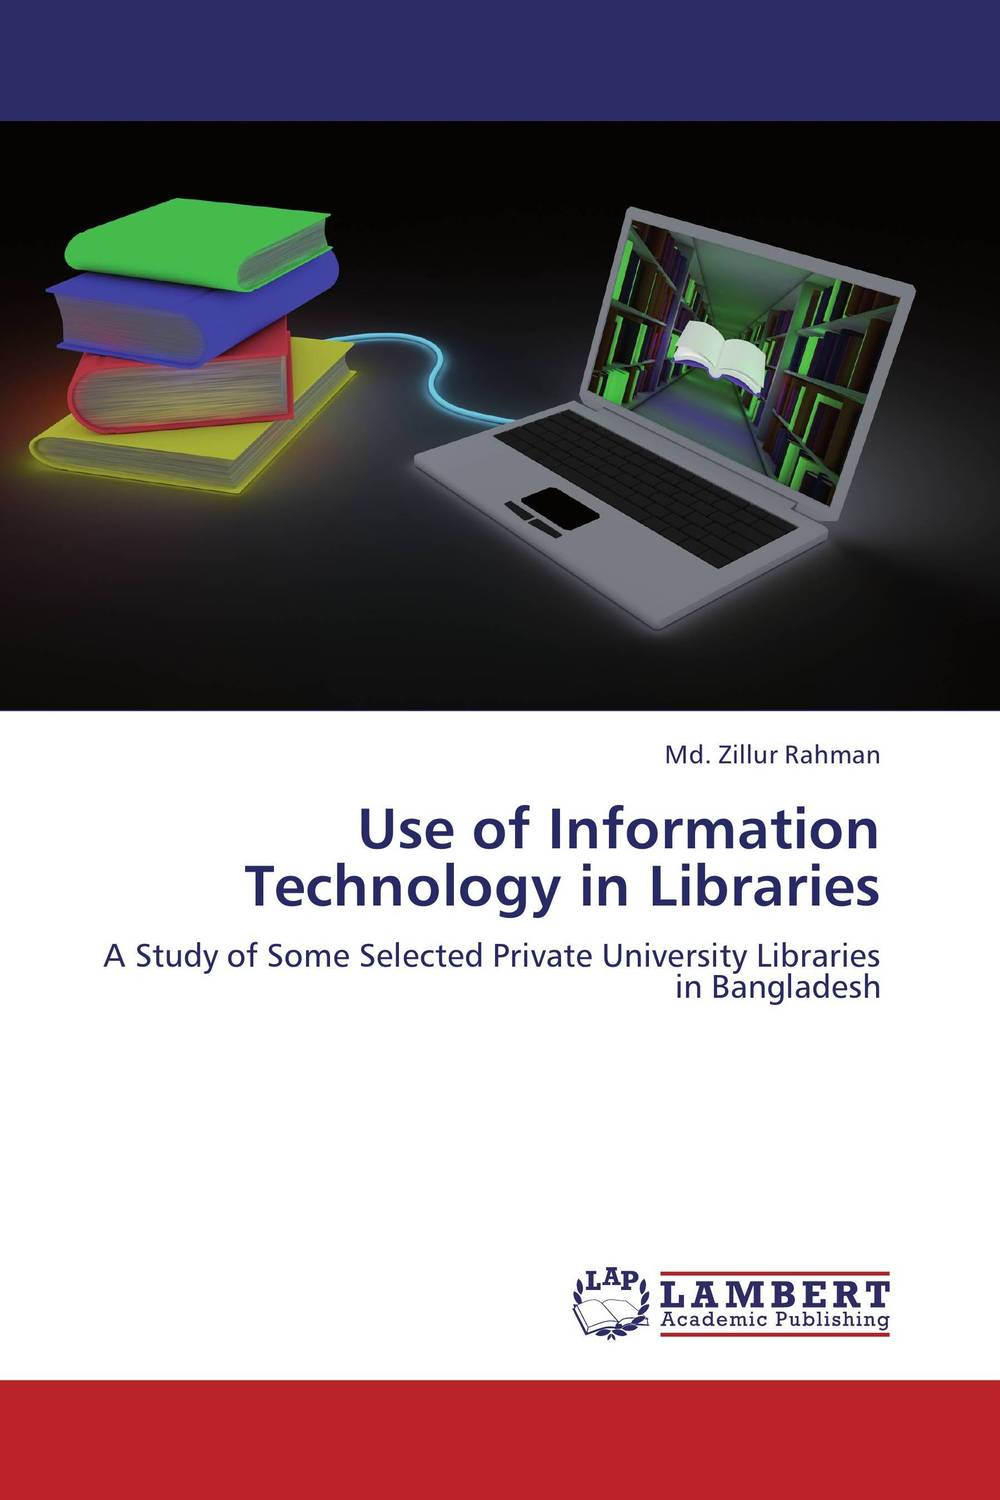 Use of Information Technology in Libraries цветная бумага henan university of technology press